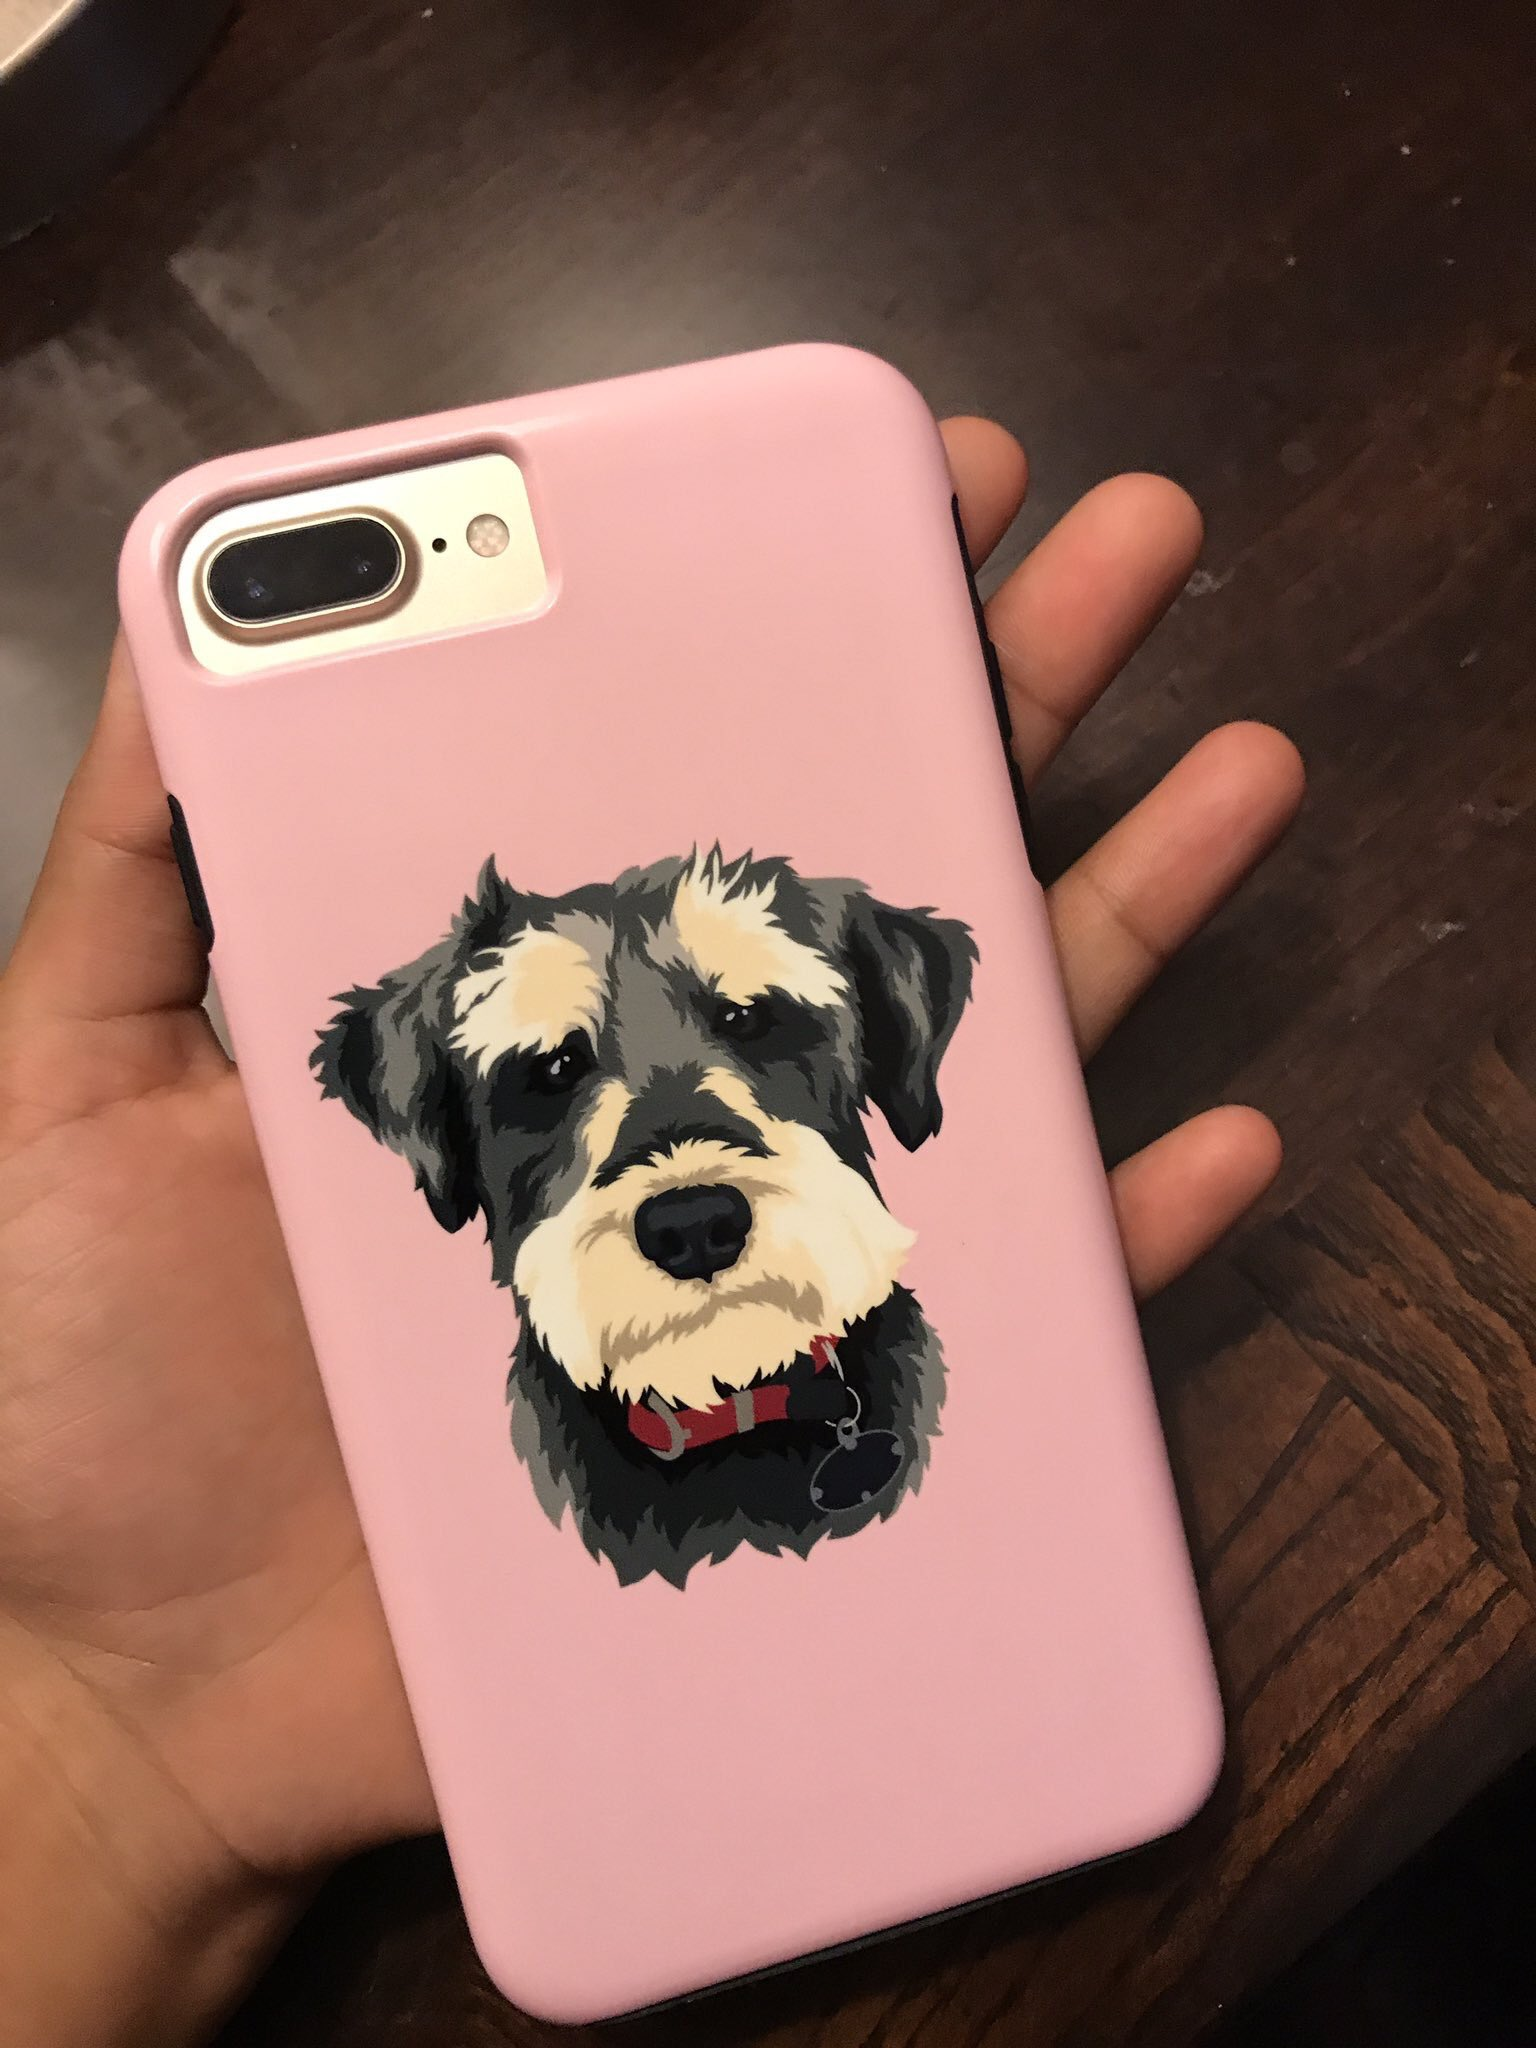 YOUR pet on a 100% custom phone case? Yes, I'm that extra ��  Buy Now ���� https://t.co/CtqjL6fOat https://t.co/mFv1UNpJW4